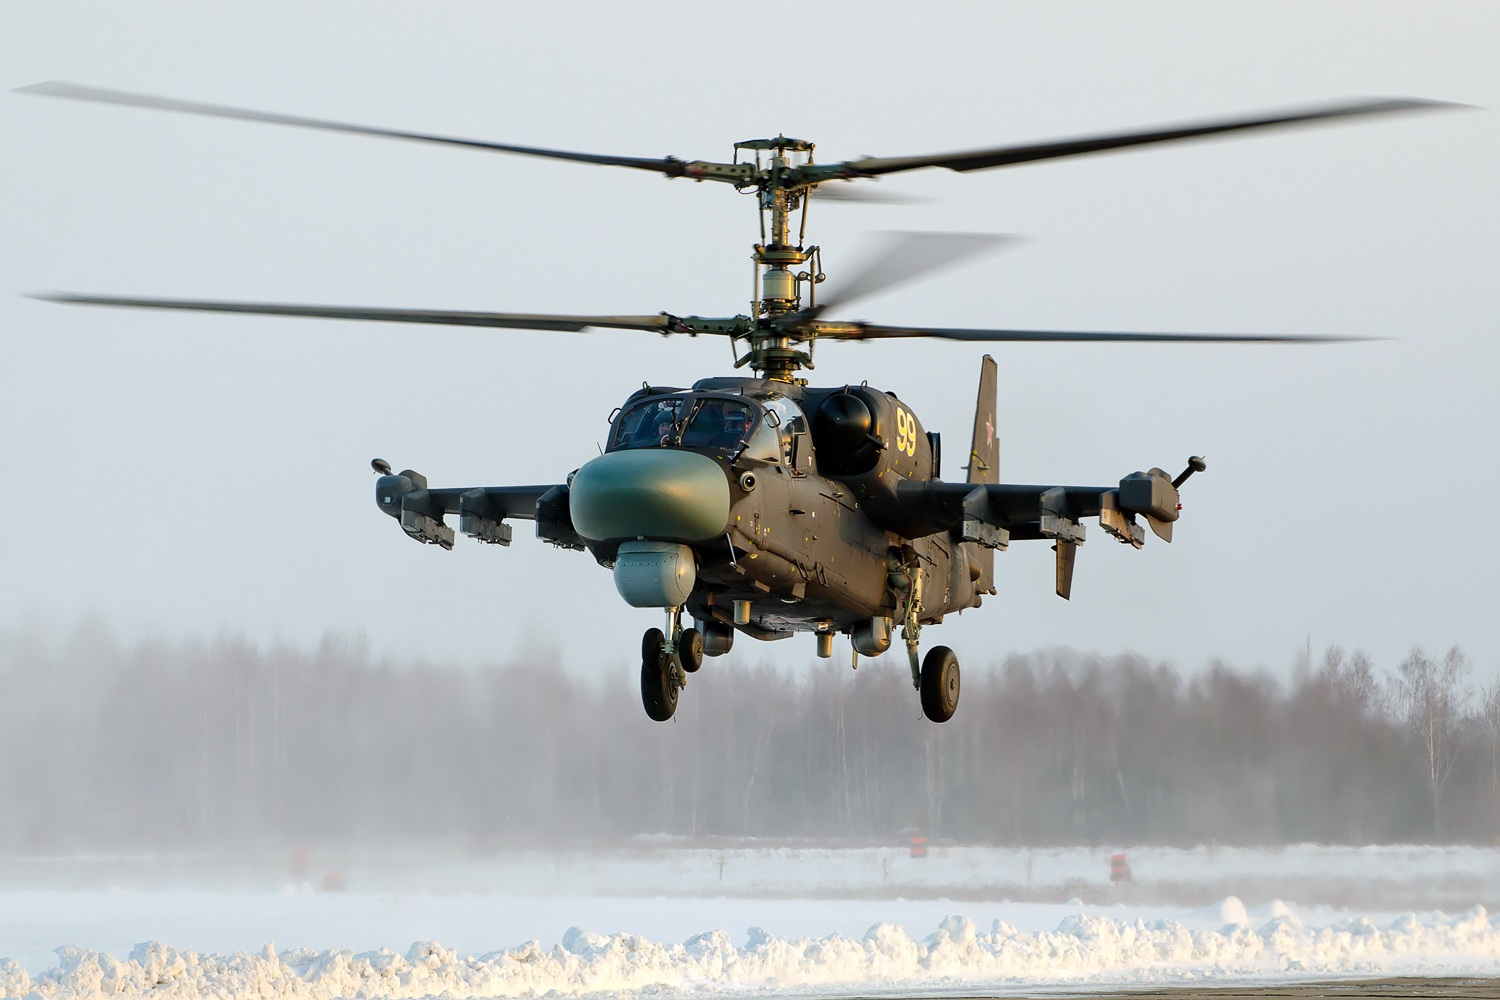 https://upload.wikimedia.org/wikipedia/commons/8/84/Kamov_Ka-52.jpg